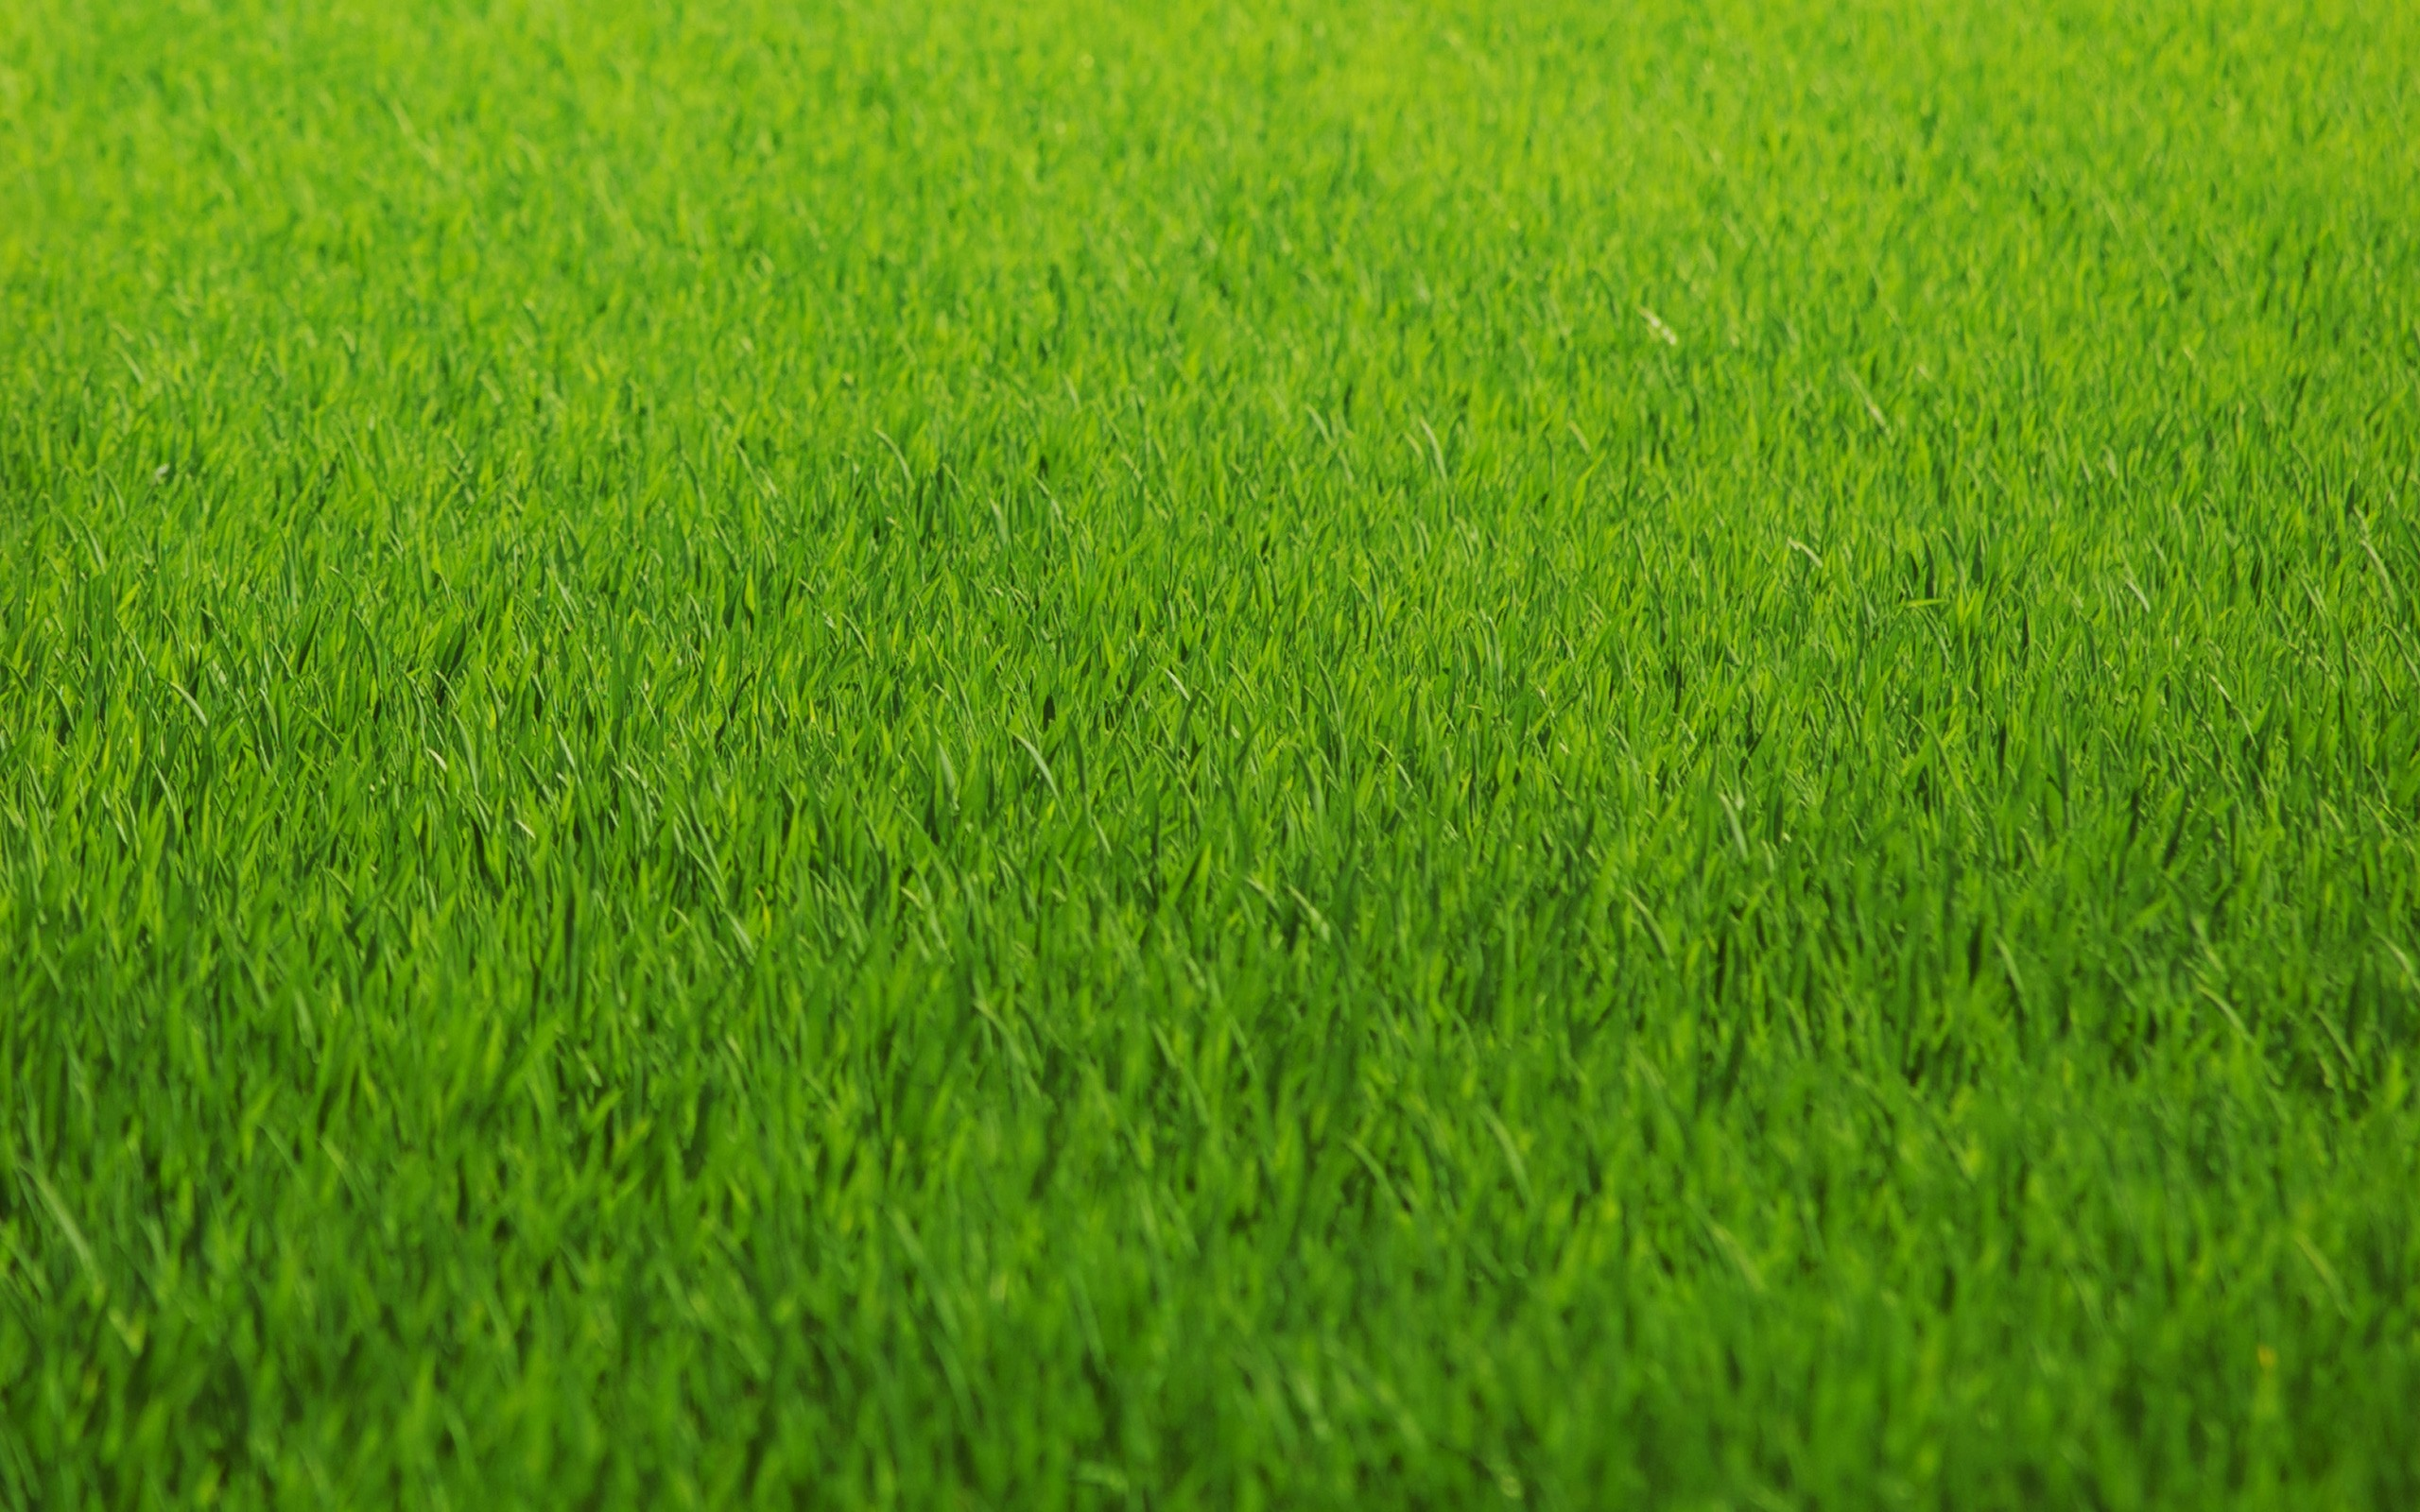 fields and grass - photo #29